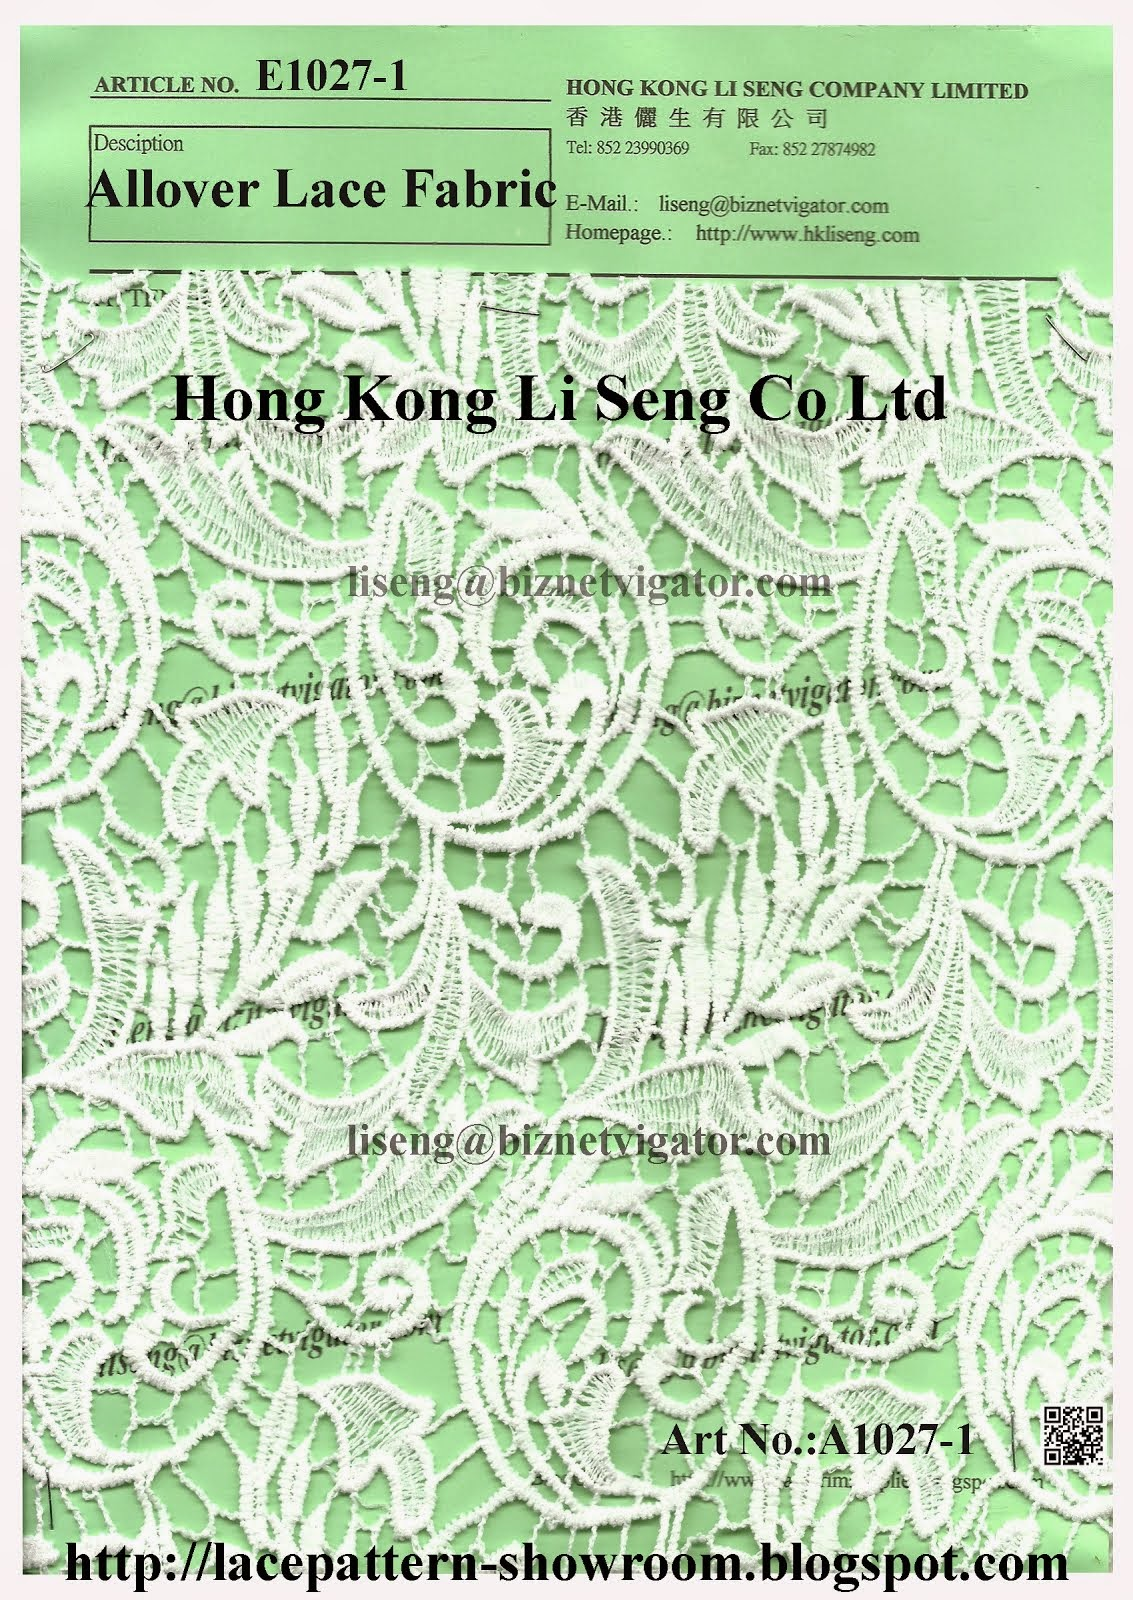 Allover Lace Fabric Manufacturer Wholesale and Supplier - Hong Kong Li Seng Co Ltd